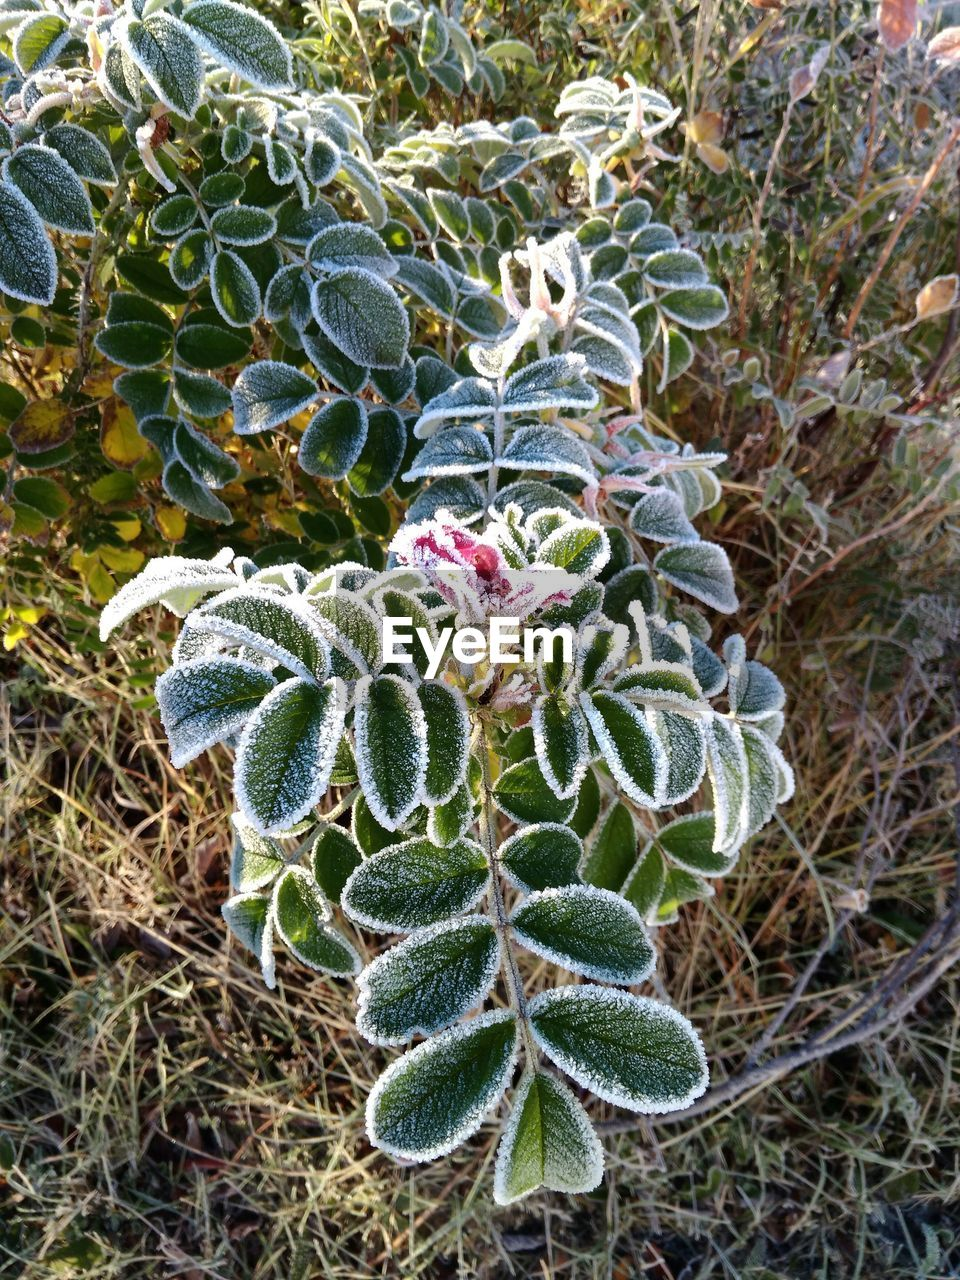 plant, growth, no people, nature, day, beauty in nature, green color, high angle view, succulent plant, close-up, cactus, land, field, outdoors, flower, focus on foreground, tranquility, leaf, plant part, flowering plant